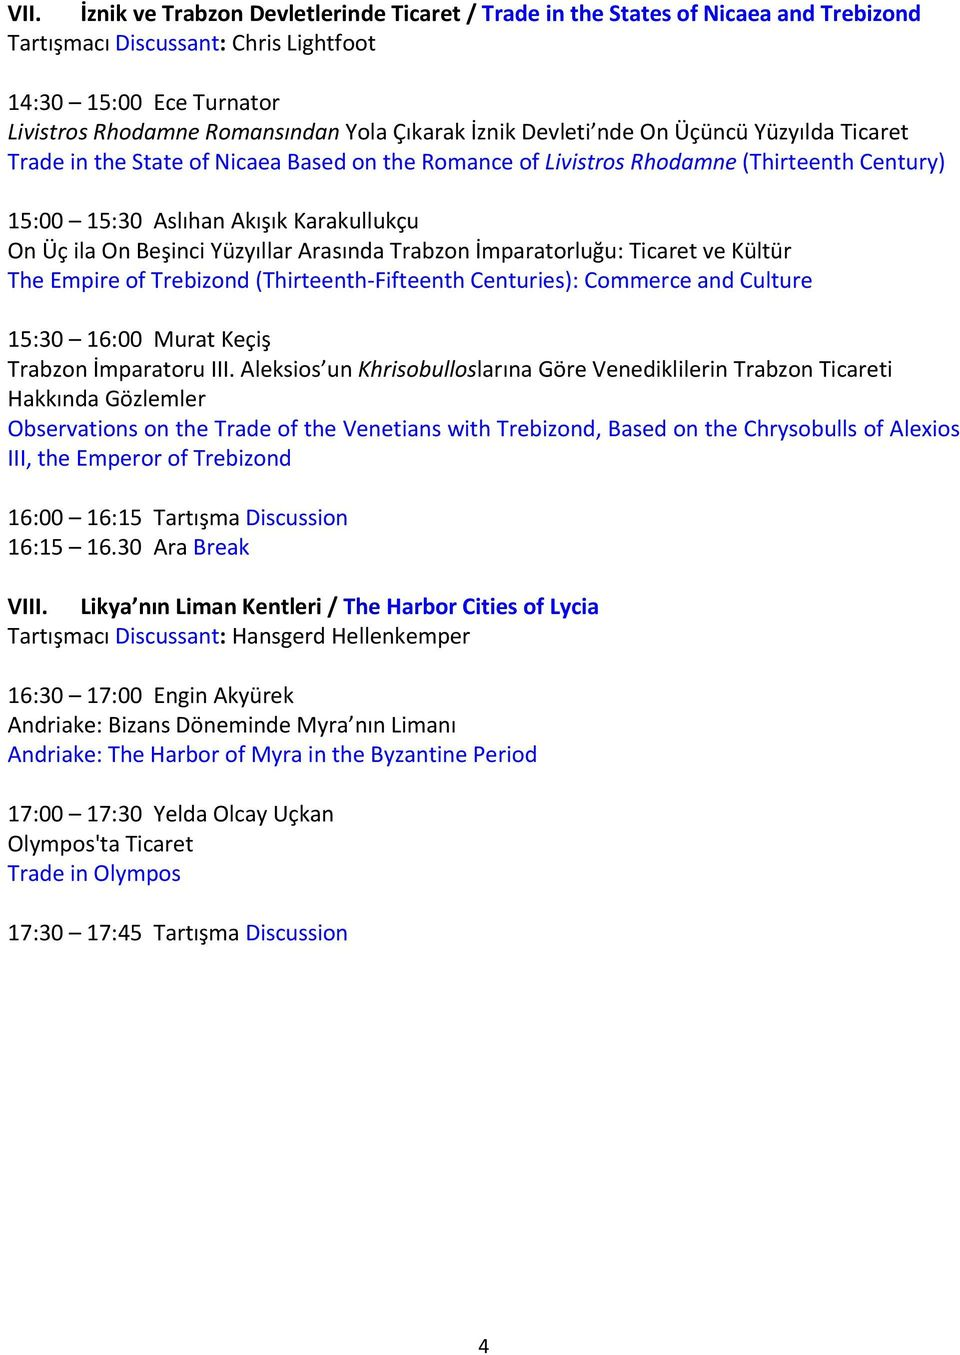 Yüzyıllar Arasında Trabzon İmparatorluğu: Ticaret ve Kültür The Empire of Trebizond (Thirteenth Fifteenth Centuries): Commerce and Culture 15:30 16:00 Murat Keçiş Trabzon İmparatoru III.